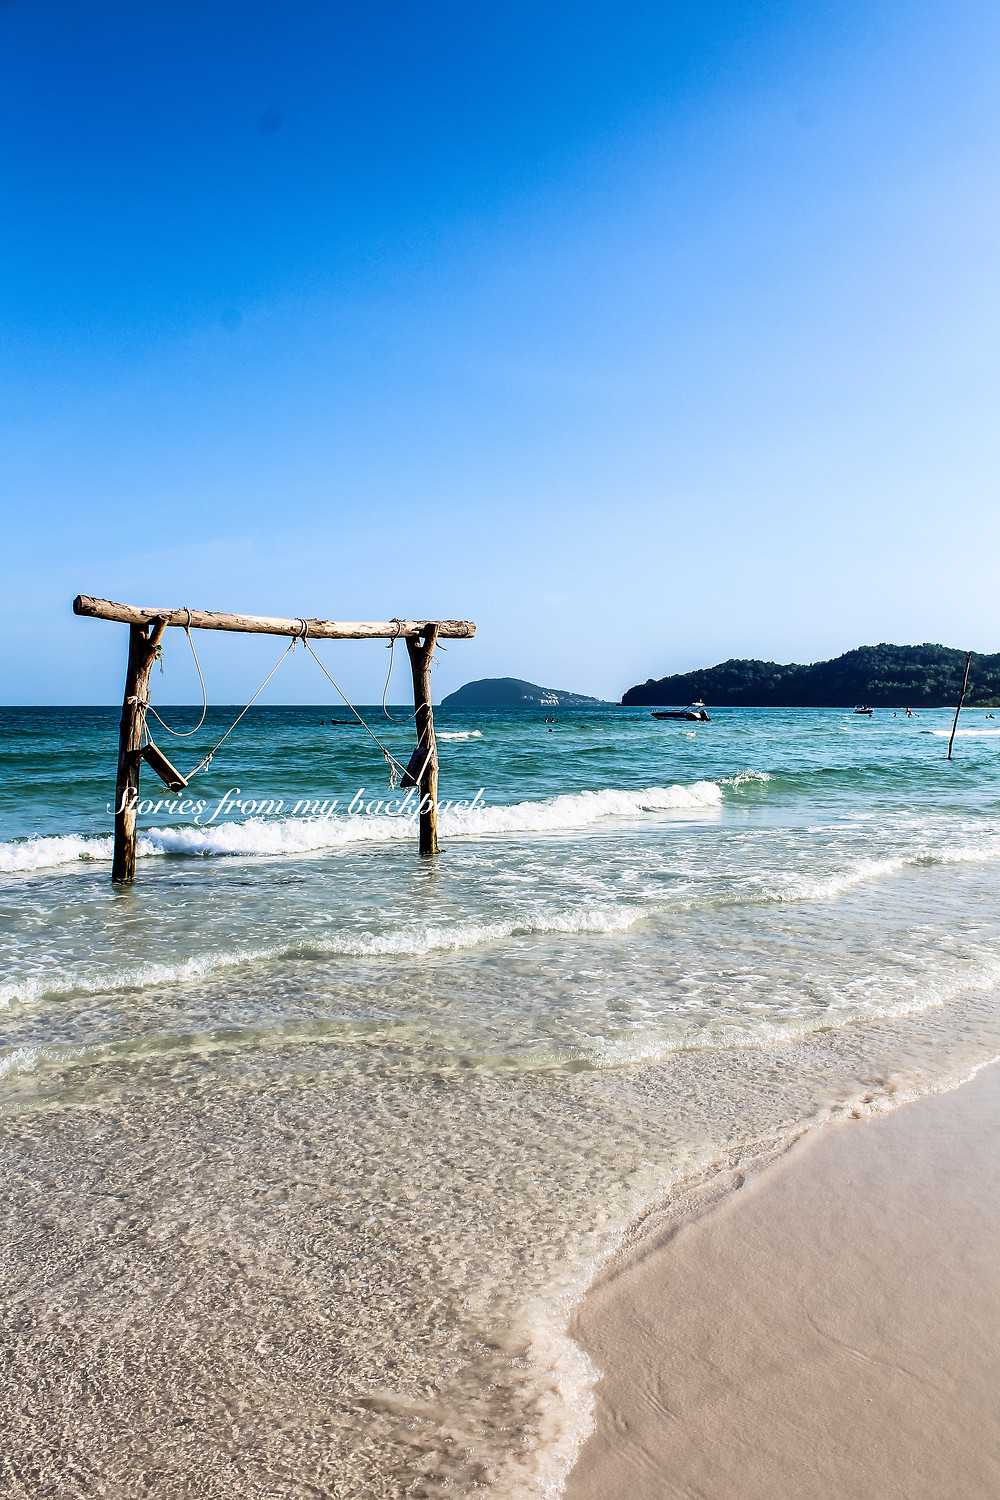 Best beach in Vietnam, Sao beach, how to get to Sao beach, public transport in phu Quoc, bus timings in phu Quoc